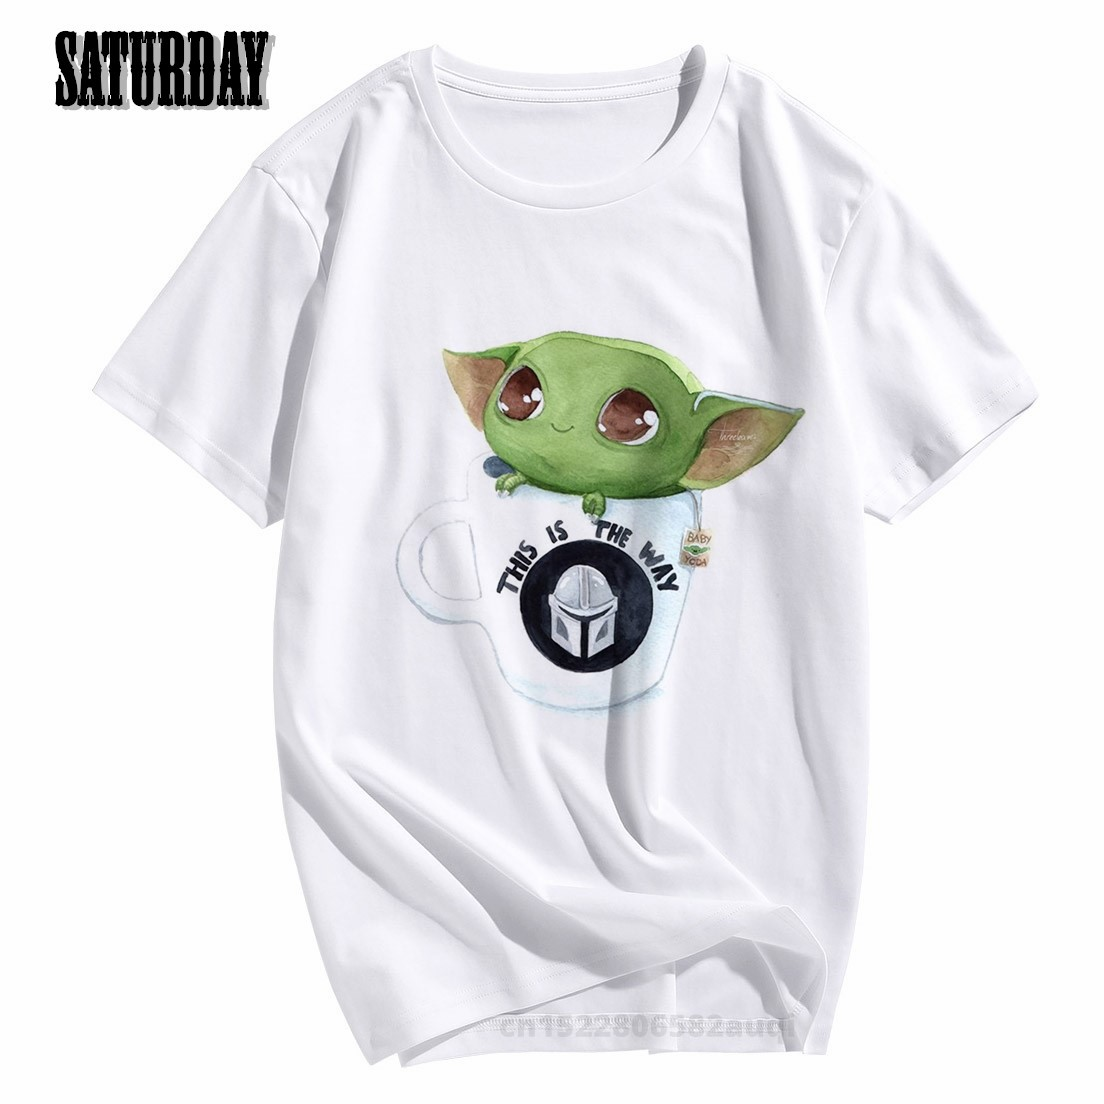 REBELN Captain Awesome Cotton Short Sleeve T Shirts for Baby Toddler Infant